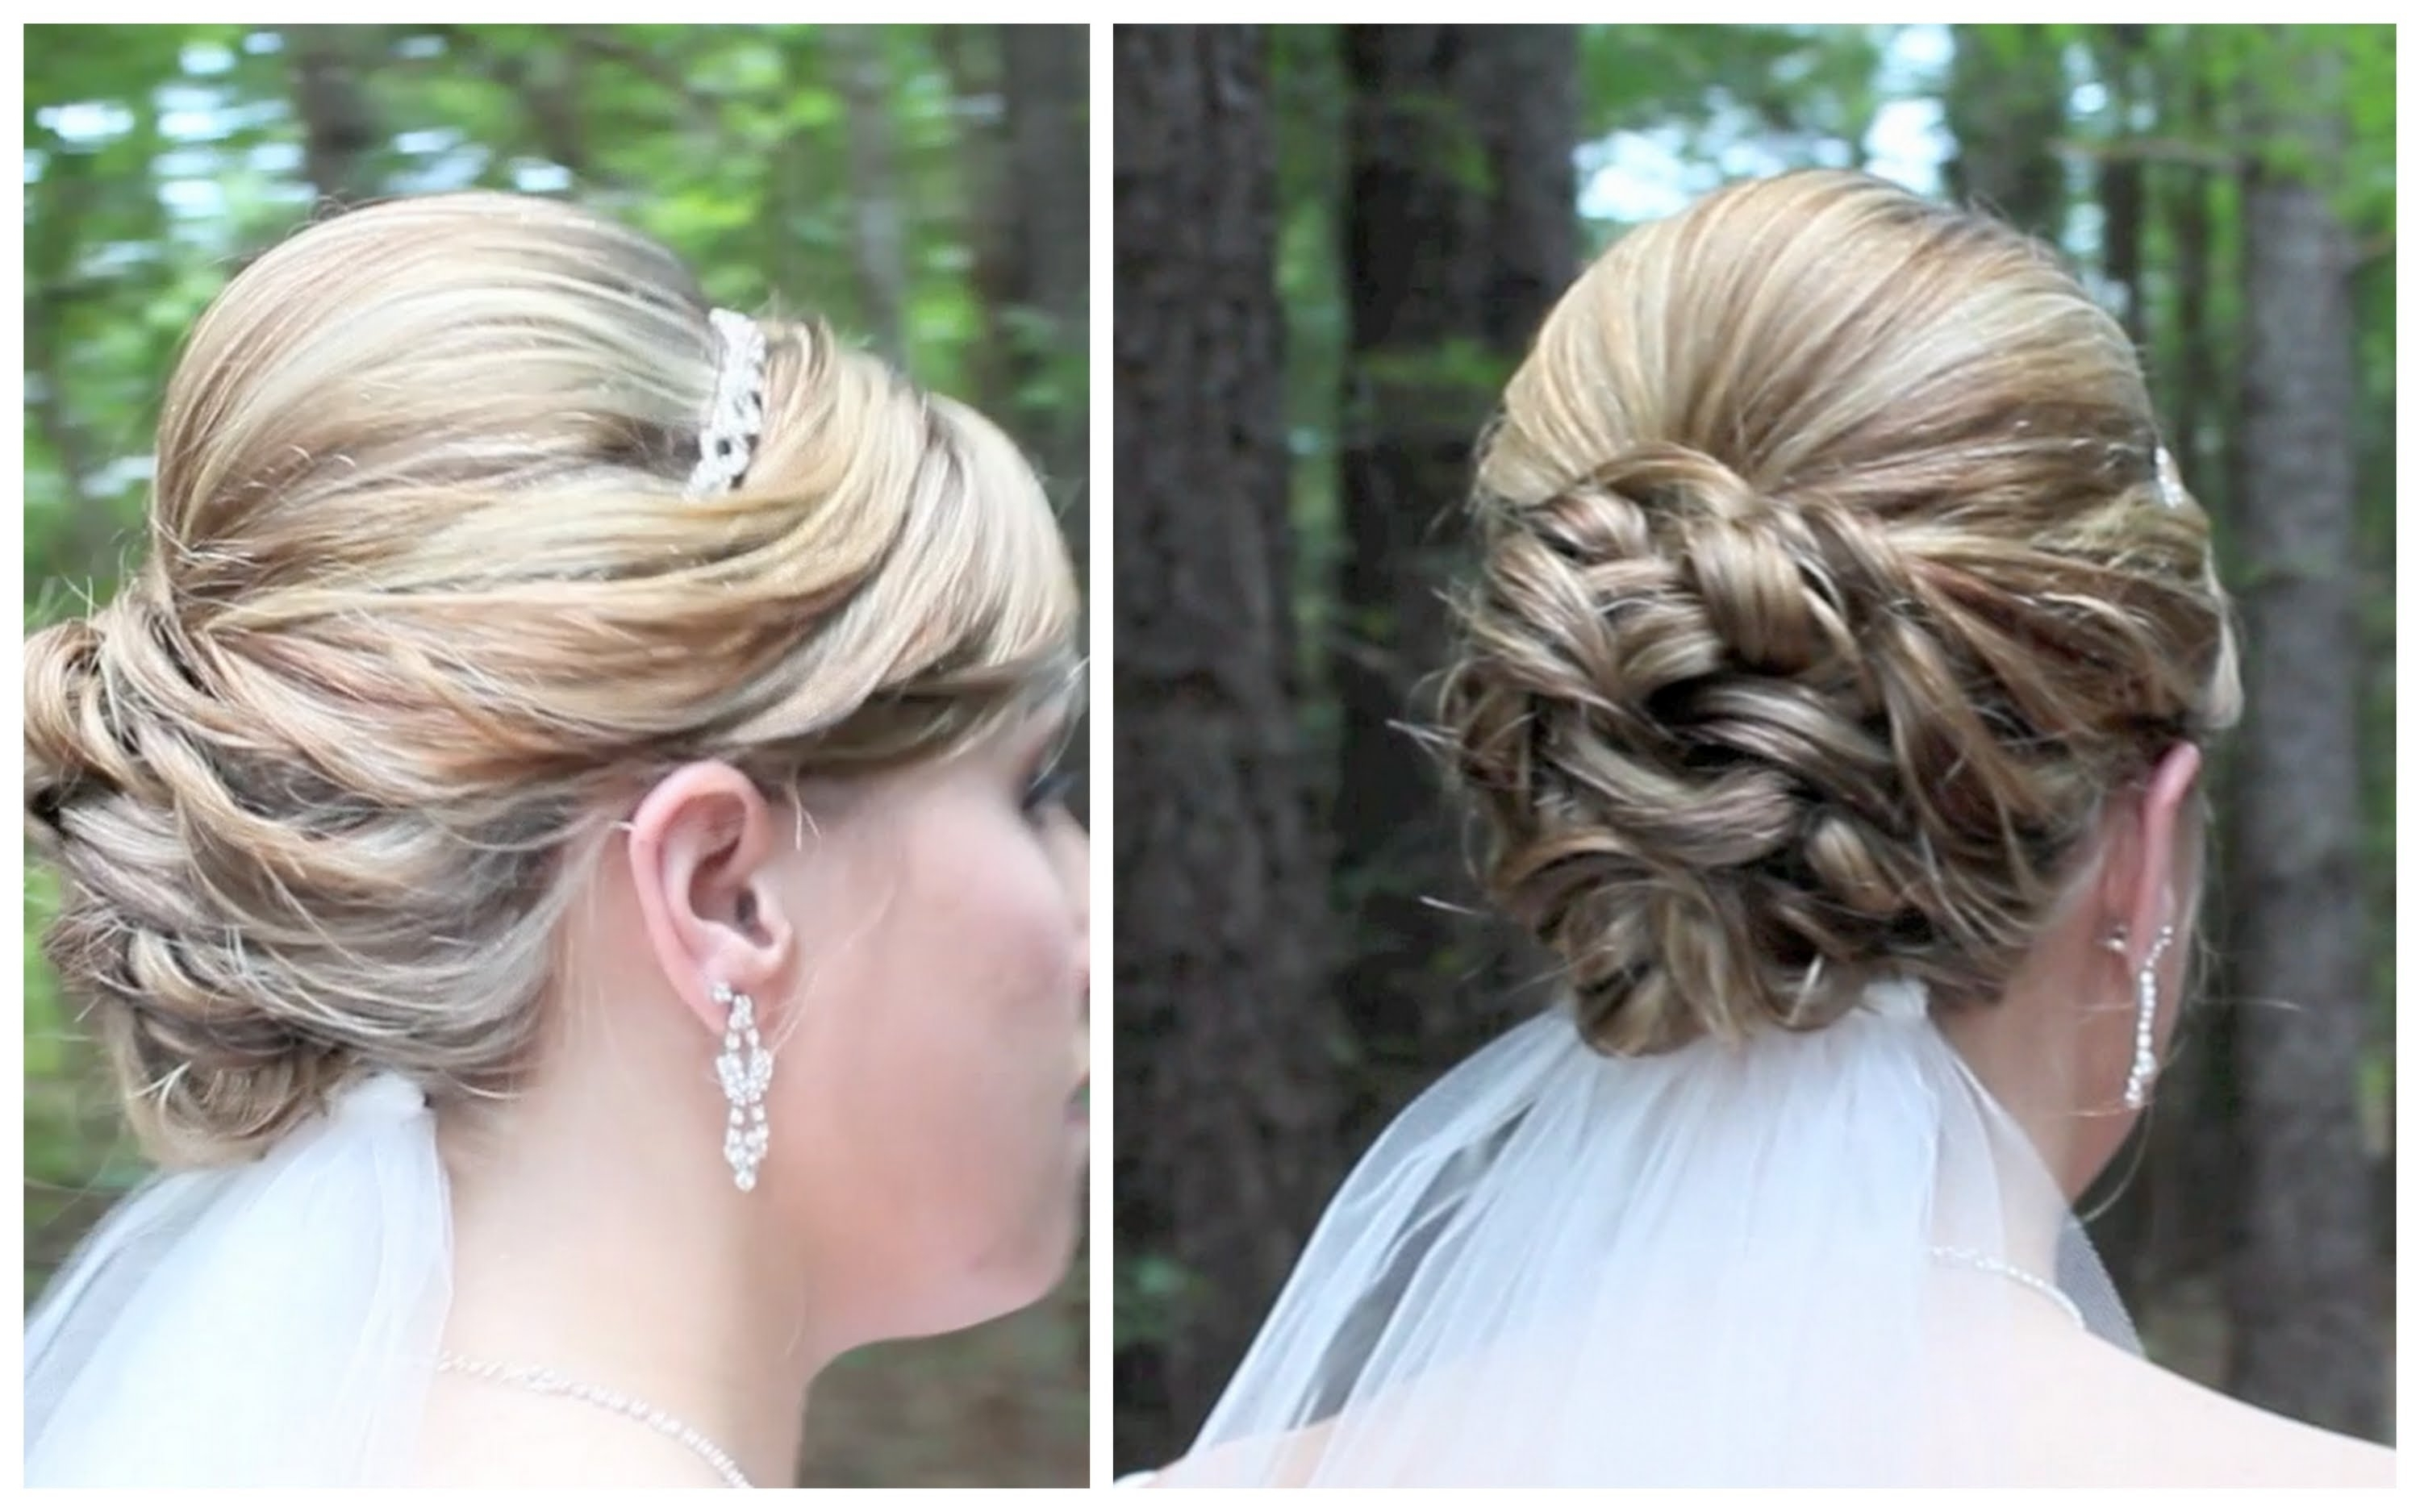 Bridal Updo On Shoulder Length Hair – Youtube For Updo Hairstyles For Wedding (View 7 of 15)